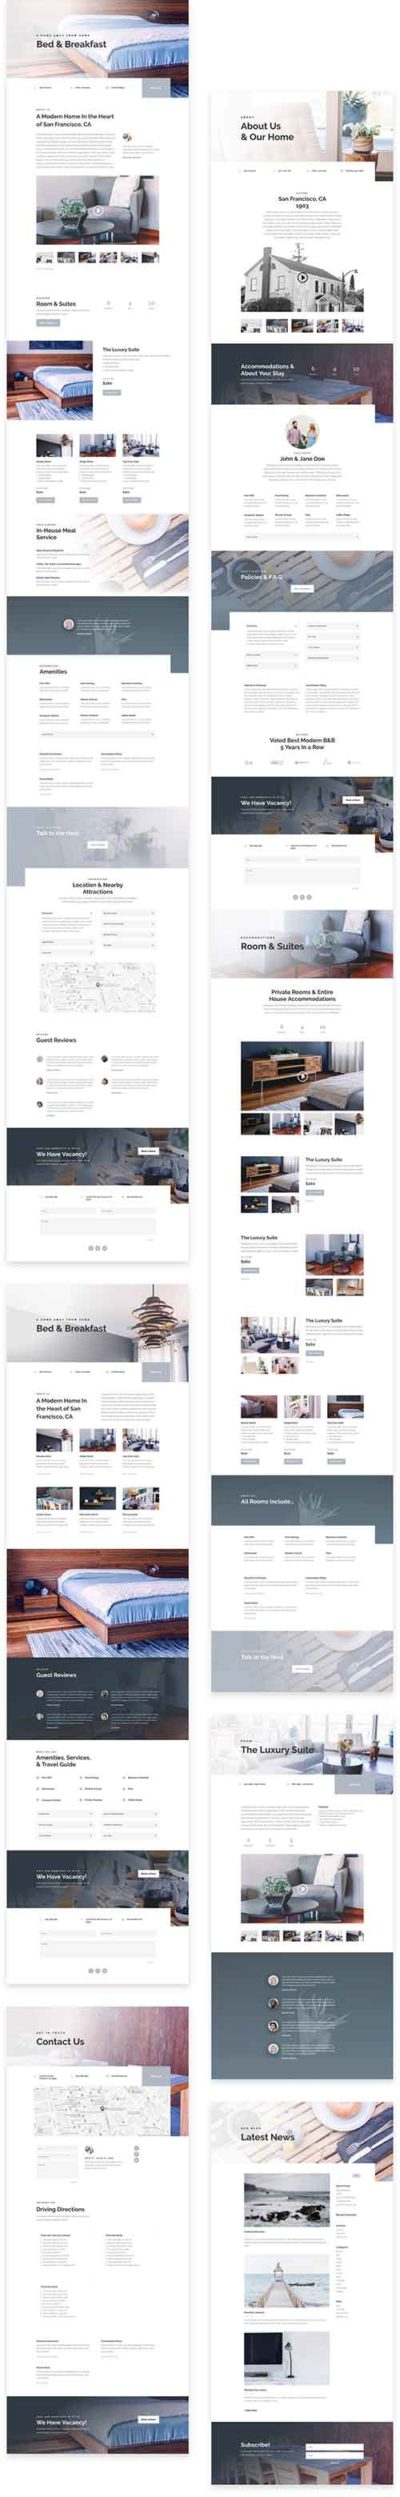 divi guest house layout pack